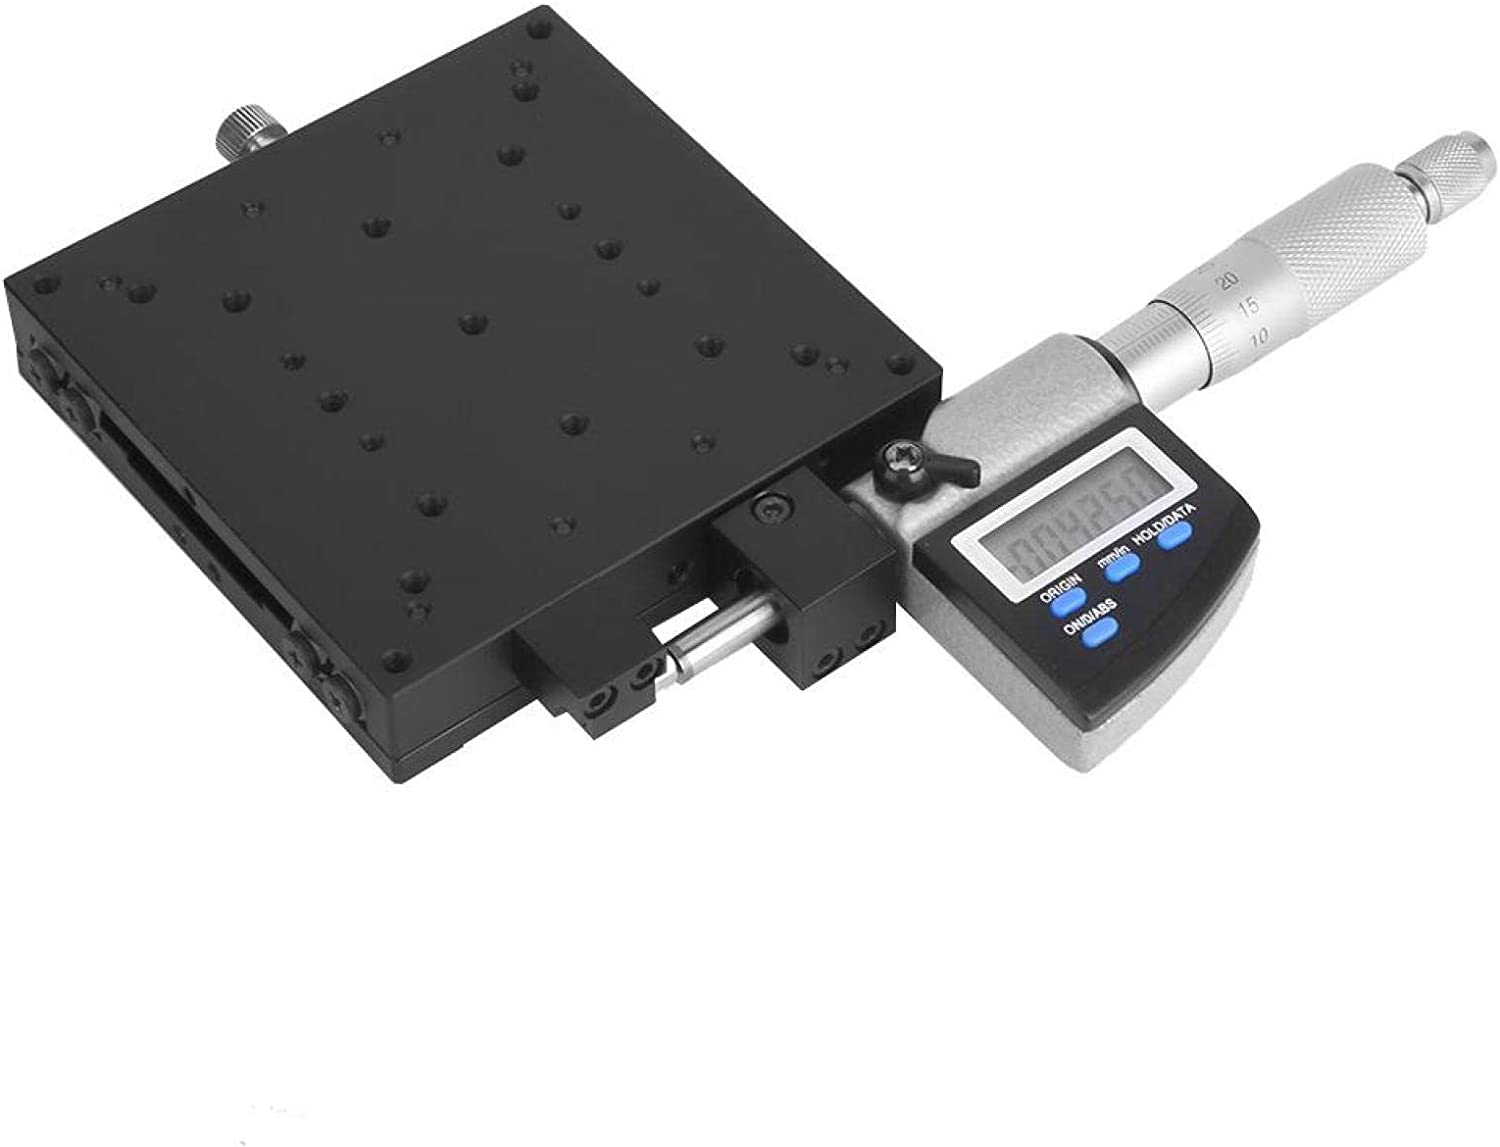 Linear Translation Stage Black Micrometer Stage Anti-Corrosion Waterproof For Production Machinery Inspection Equipment